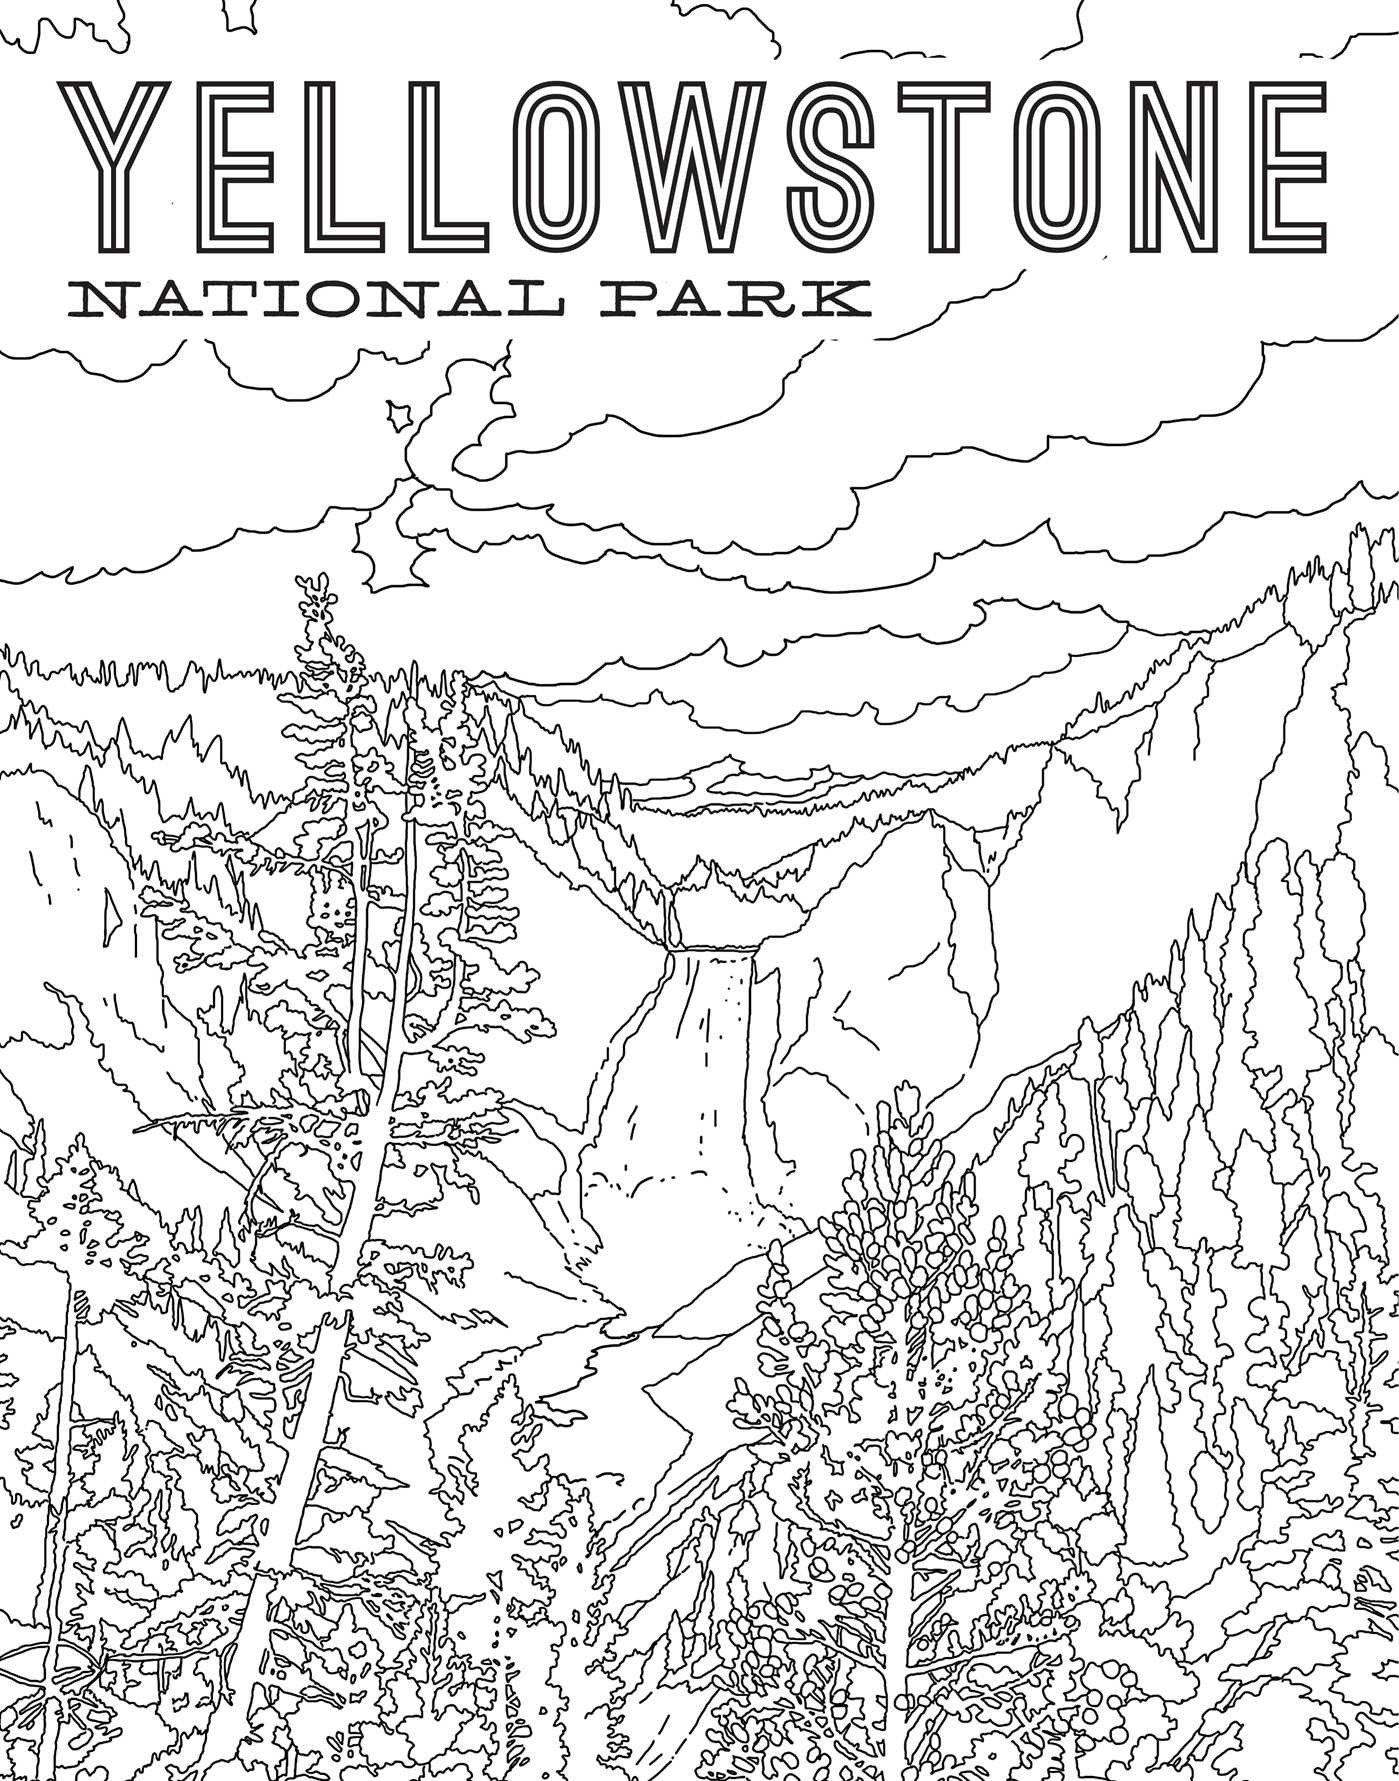 The National Parks Poster Coloring Book Book By Ian Shive Official Publisher Page Simon Schuster